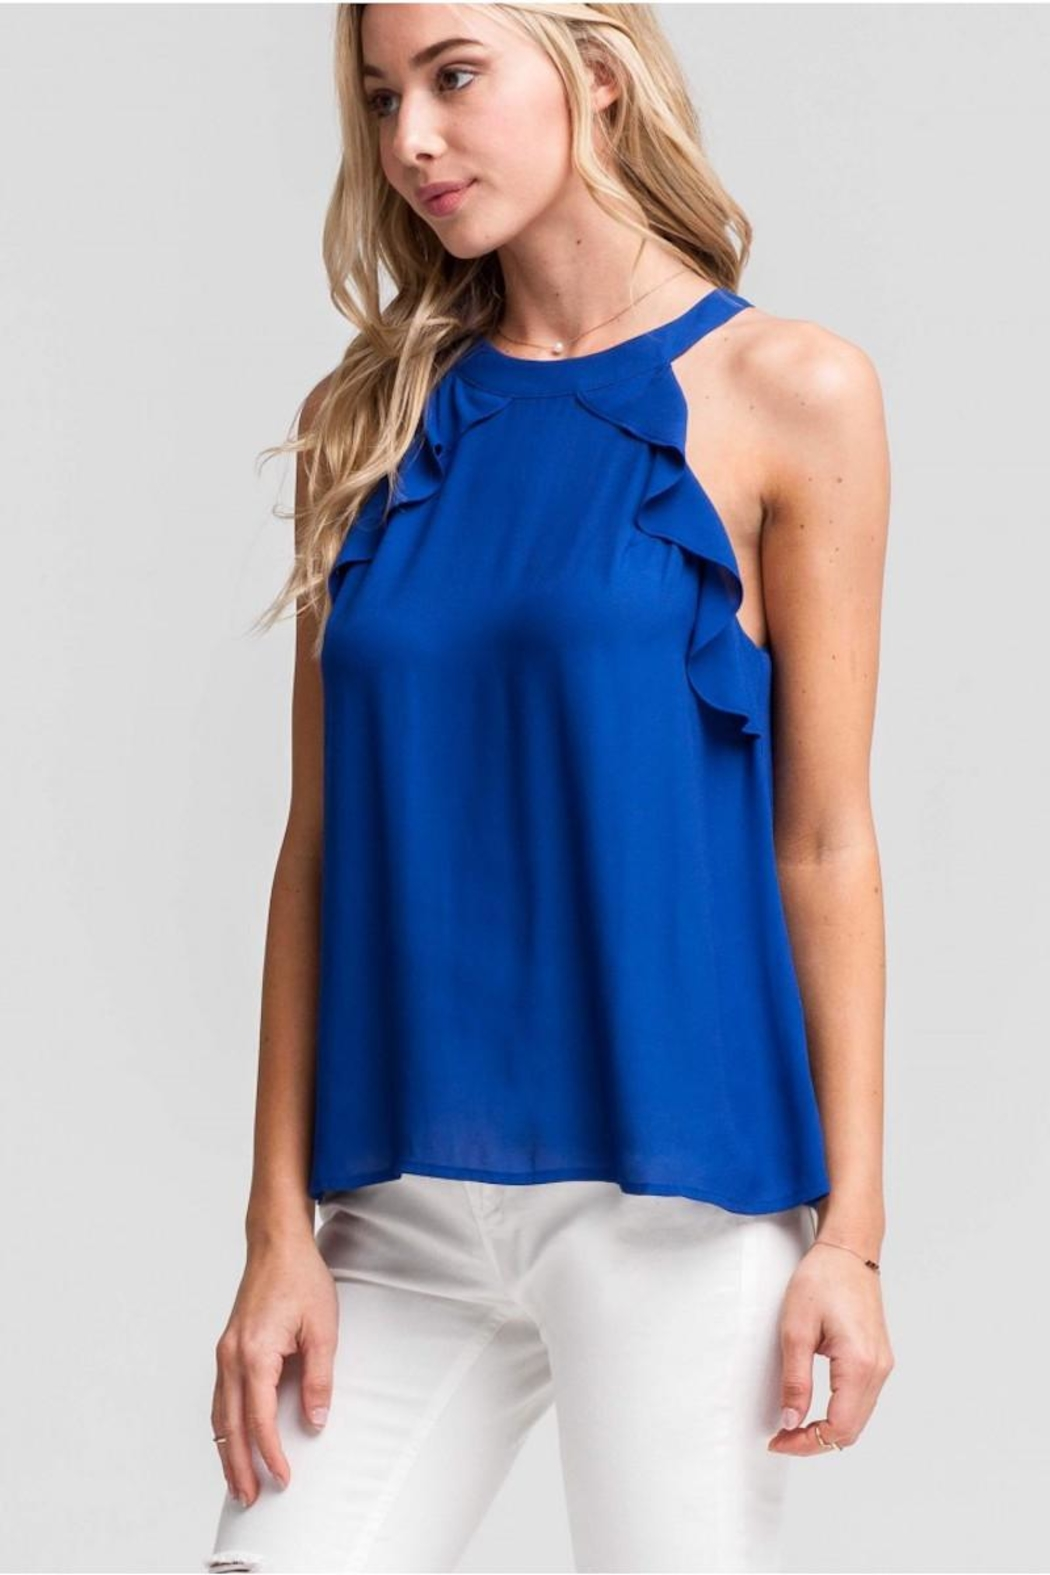 0f680d68d7 Lush Scalloped Sleeveless Blouse from San Francisco by Palette ...